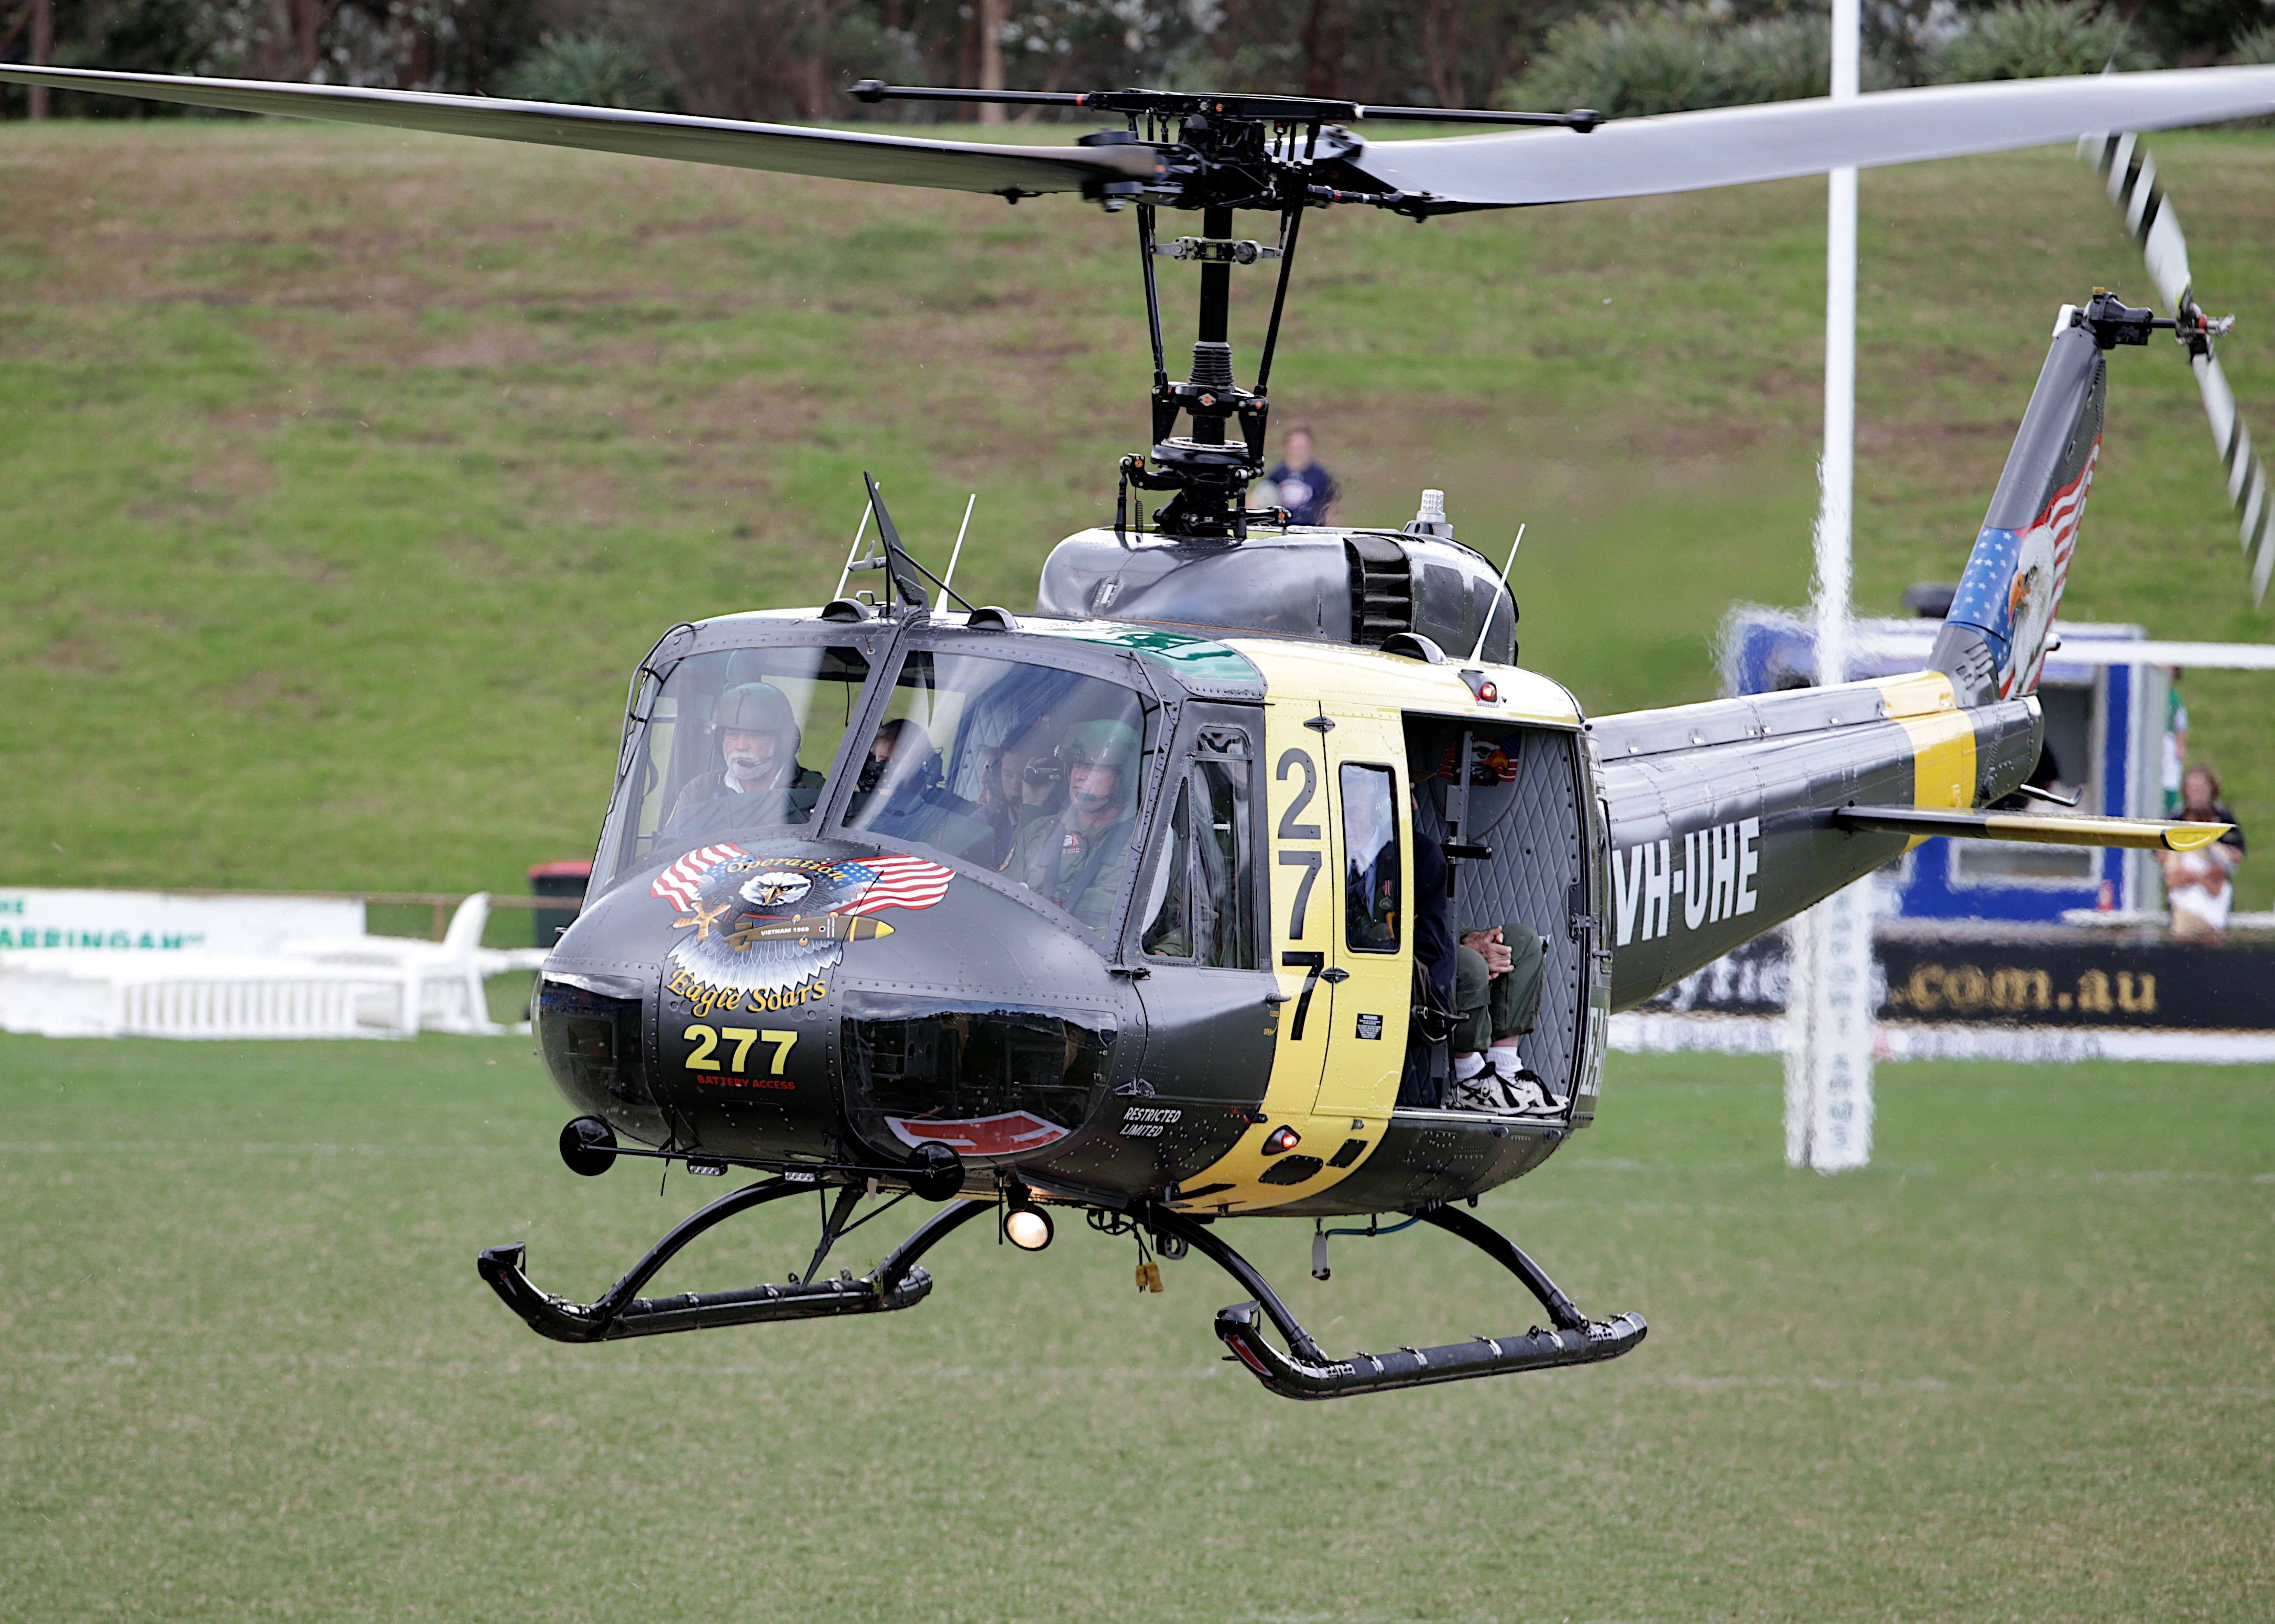 UH-1H Huey Helicopter